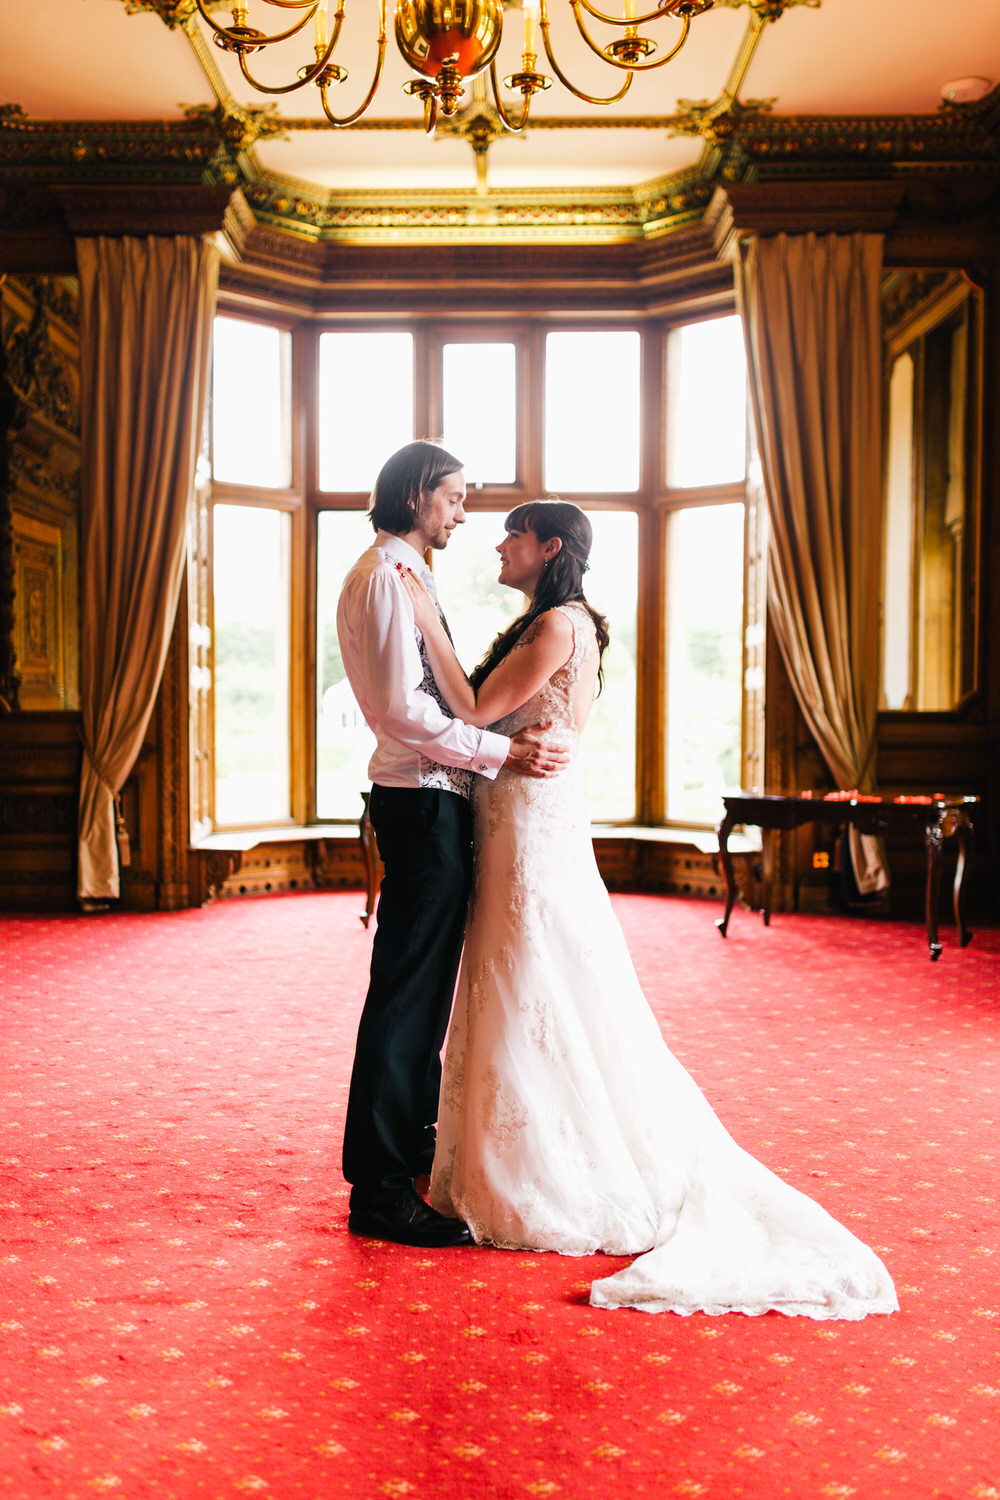 Special-Day-Photography-Manor-By-The-Lake-Cheltenham-Manor-By-The-Lake-50s-Wedding-romantic-indoors-wedding-portraits.jpg